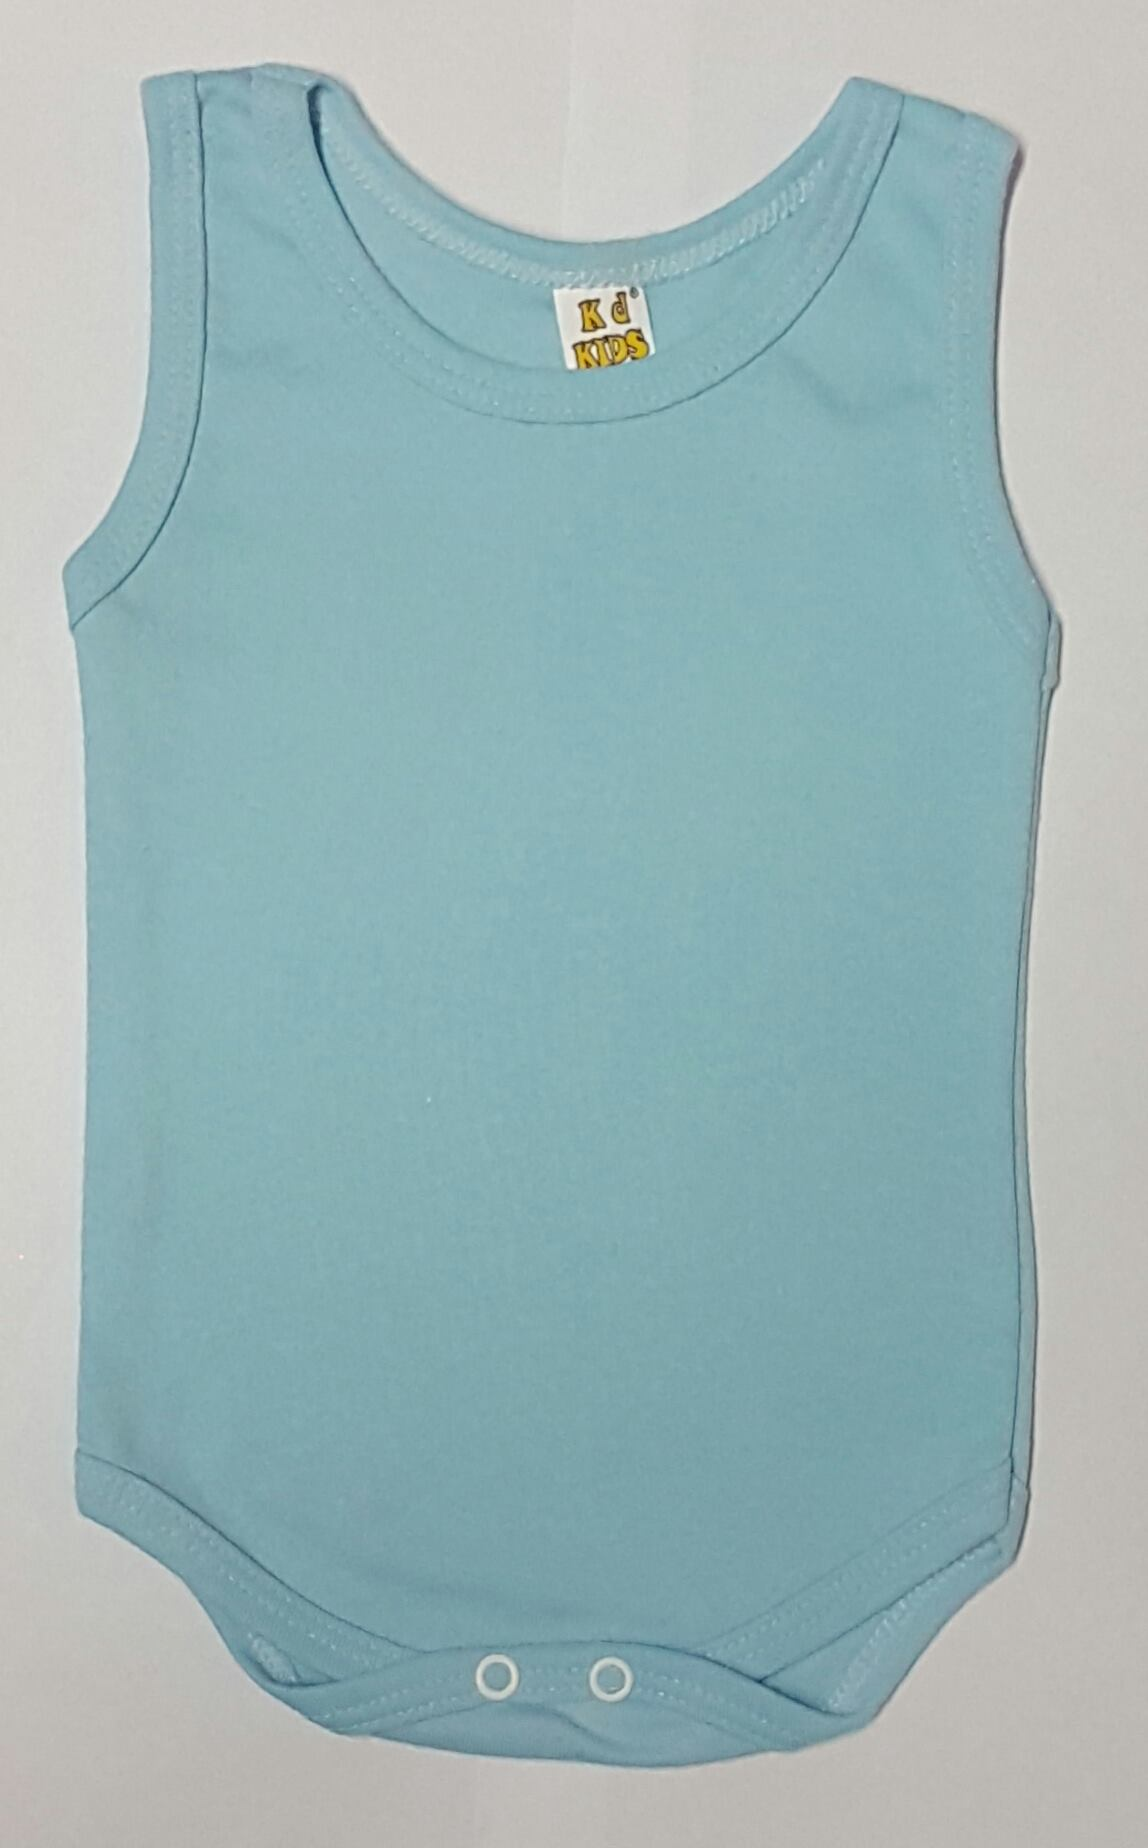 BODY KD KIDS REG AZUL M